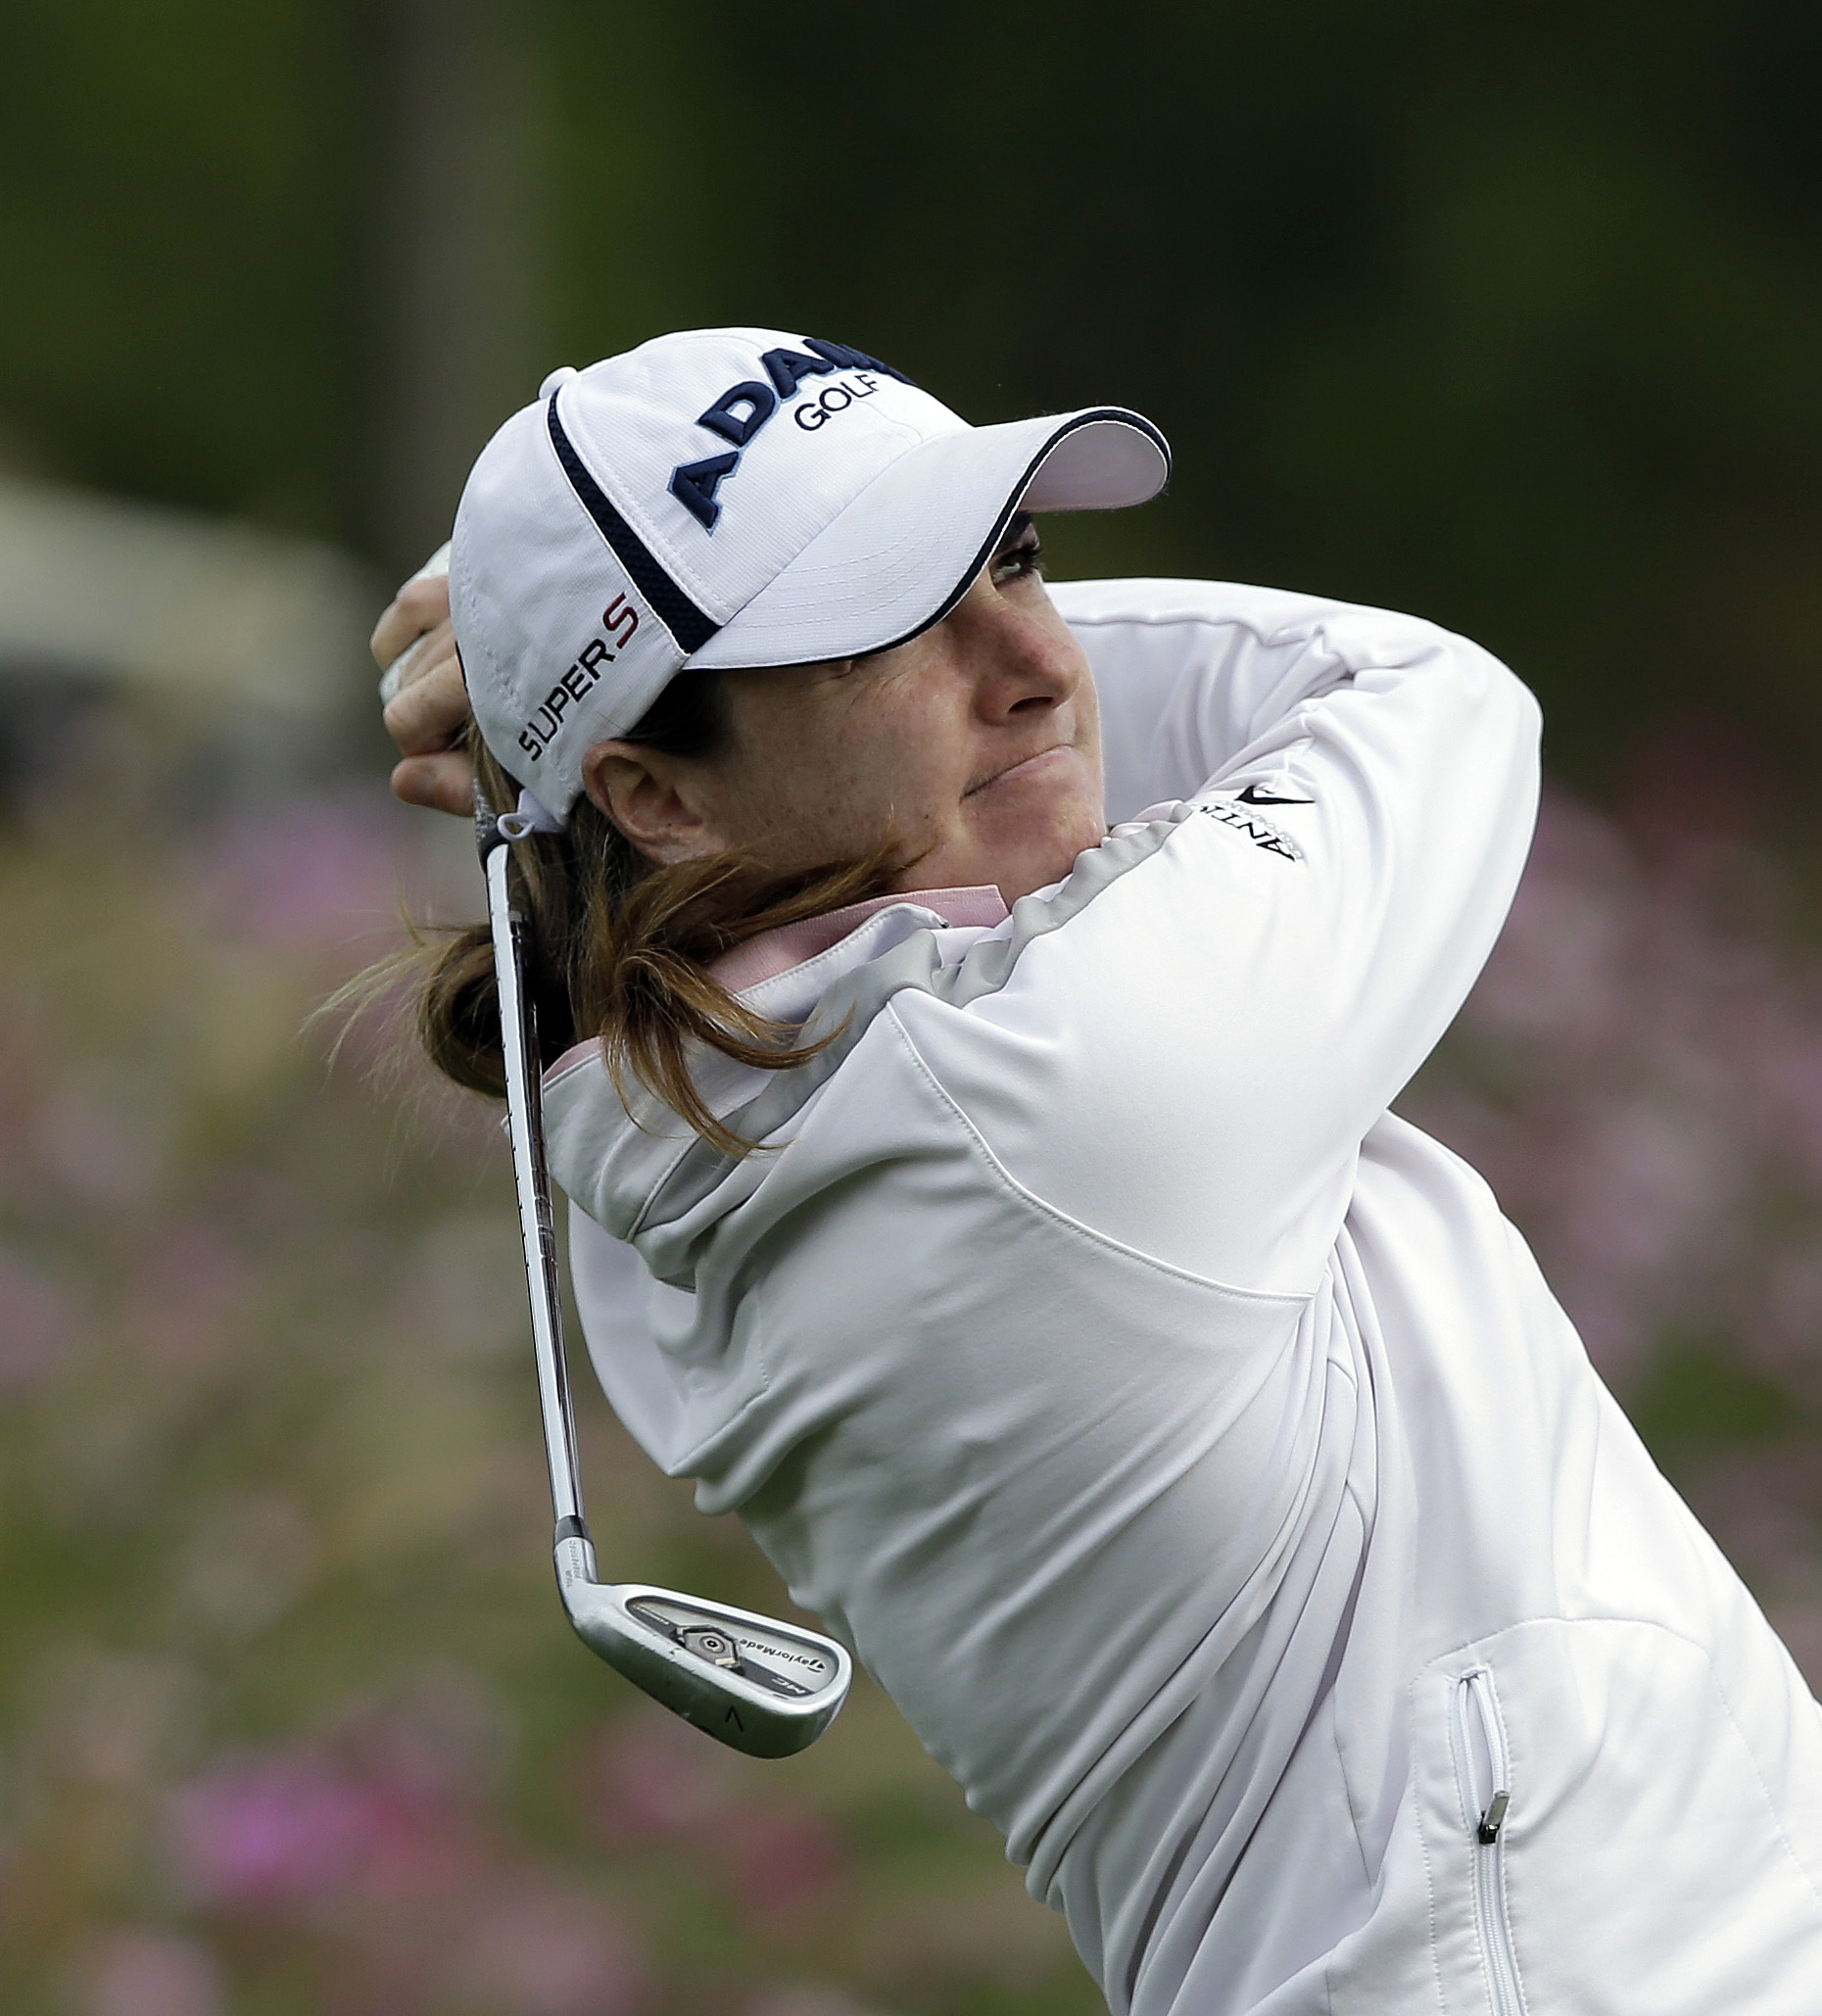 Alison Walshe of the United States watches her shot on the third hole during the second round of the KEB Hana Bank Championship golf tournament at Sky72 Golf Club in Incheon, west of Seoul, South Korea, Saturday, Oct. 19, 2013